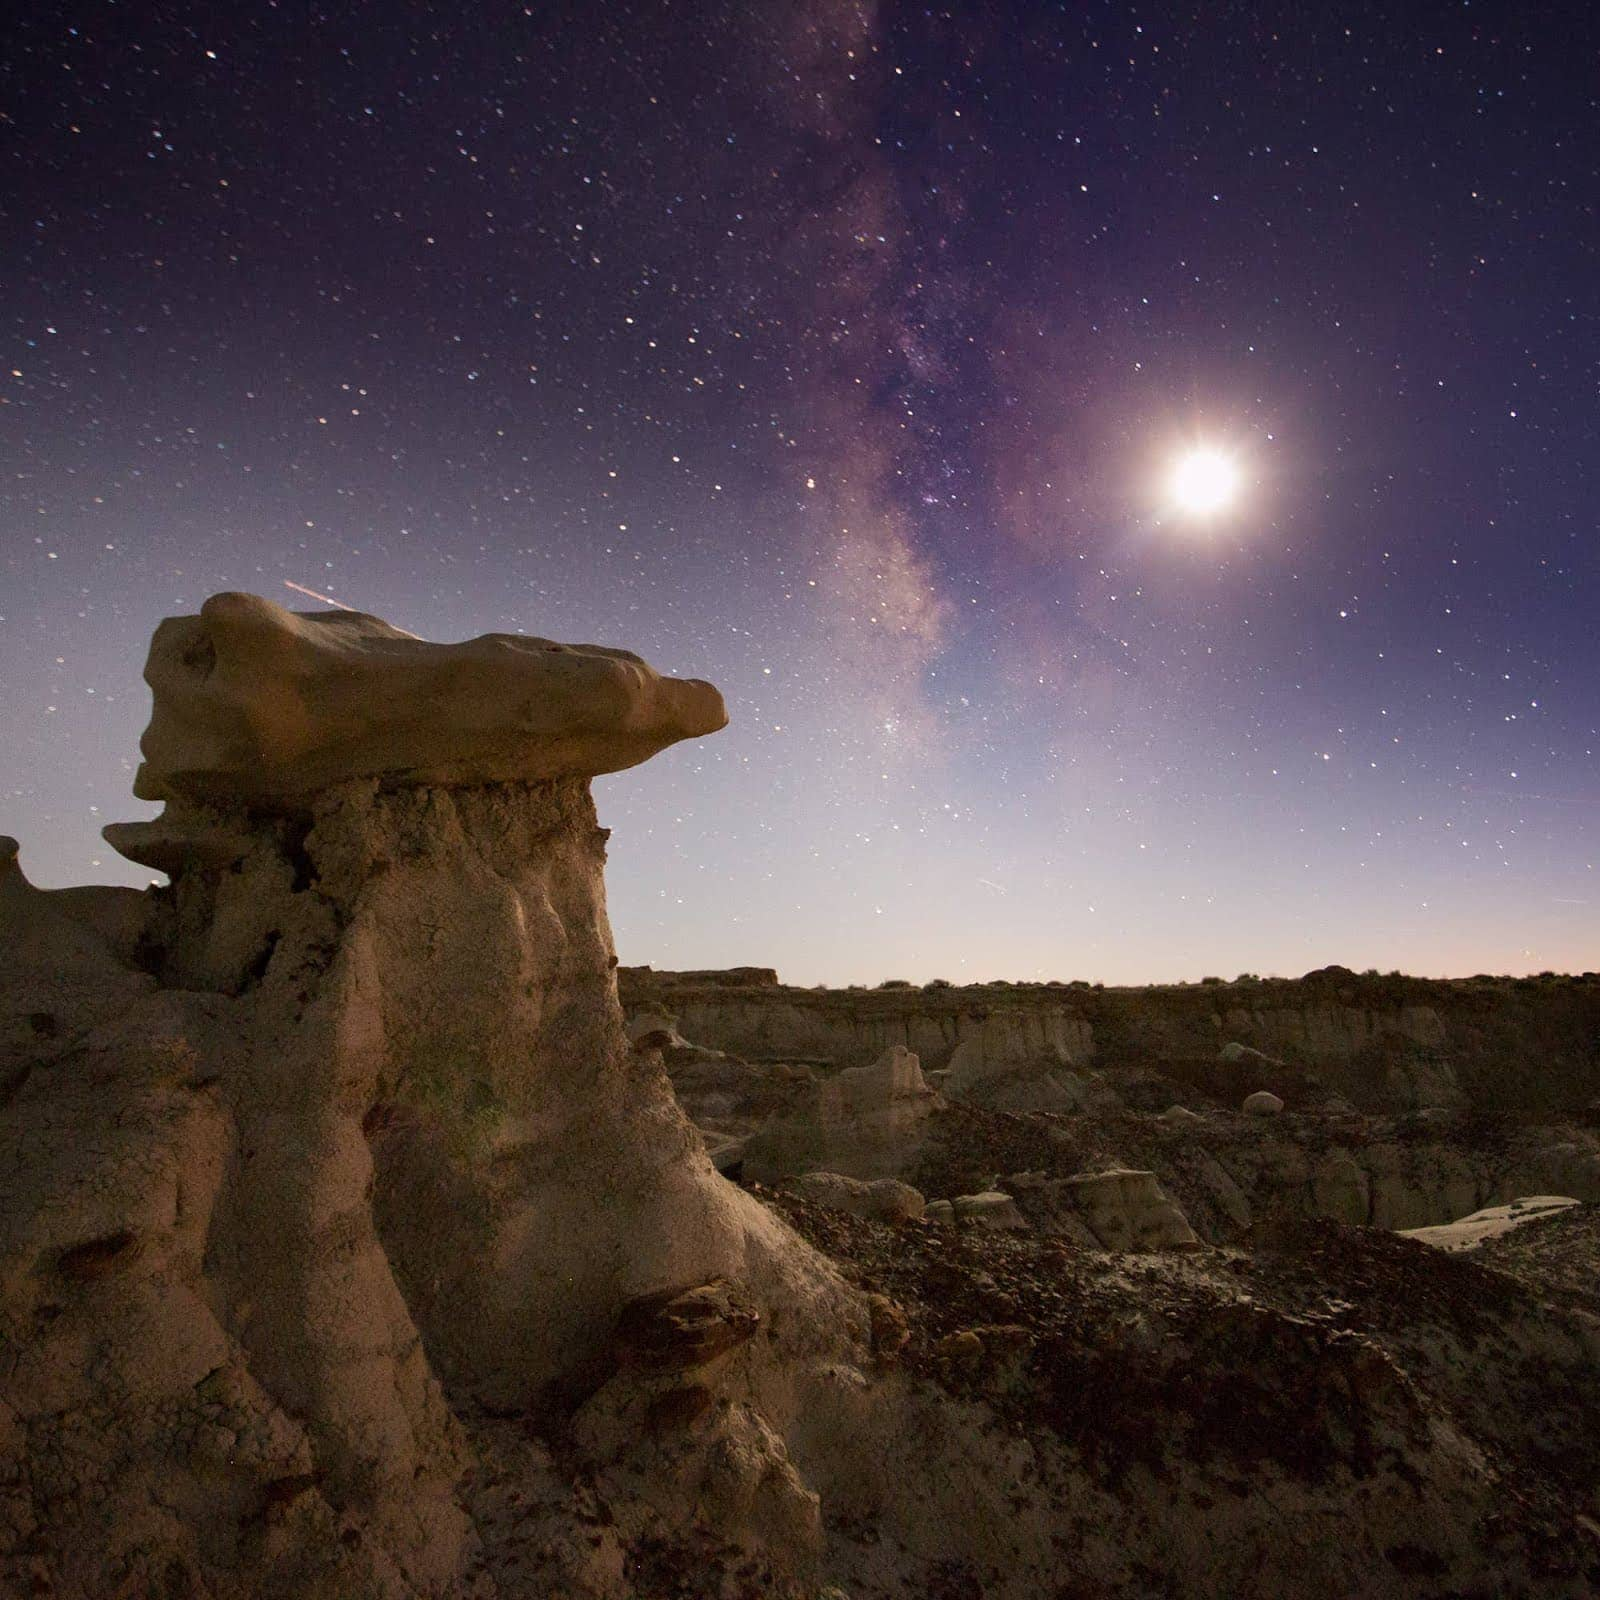 Moonlit Bisti Badlands New Mexico by Laurence Norah